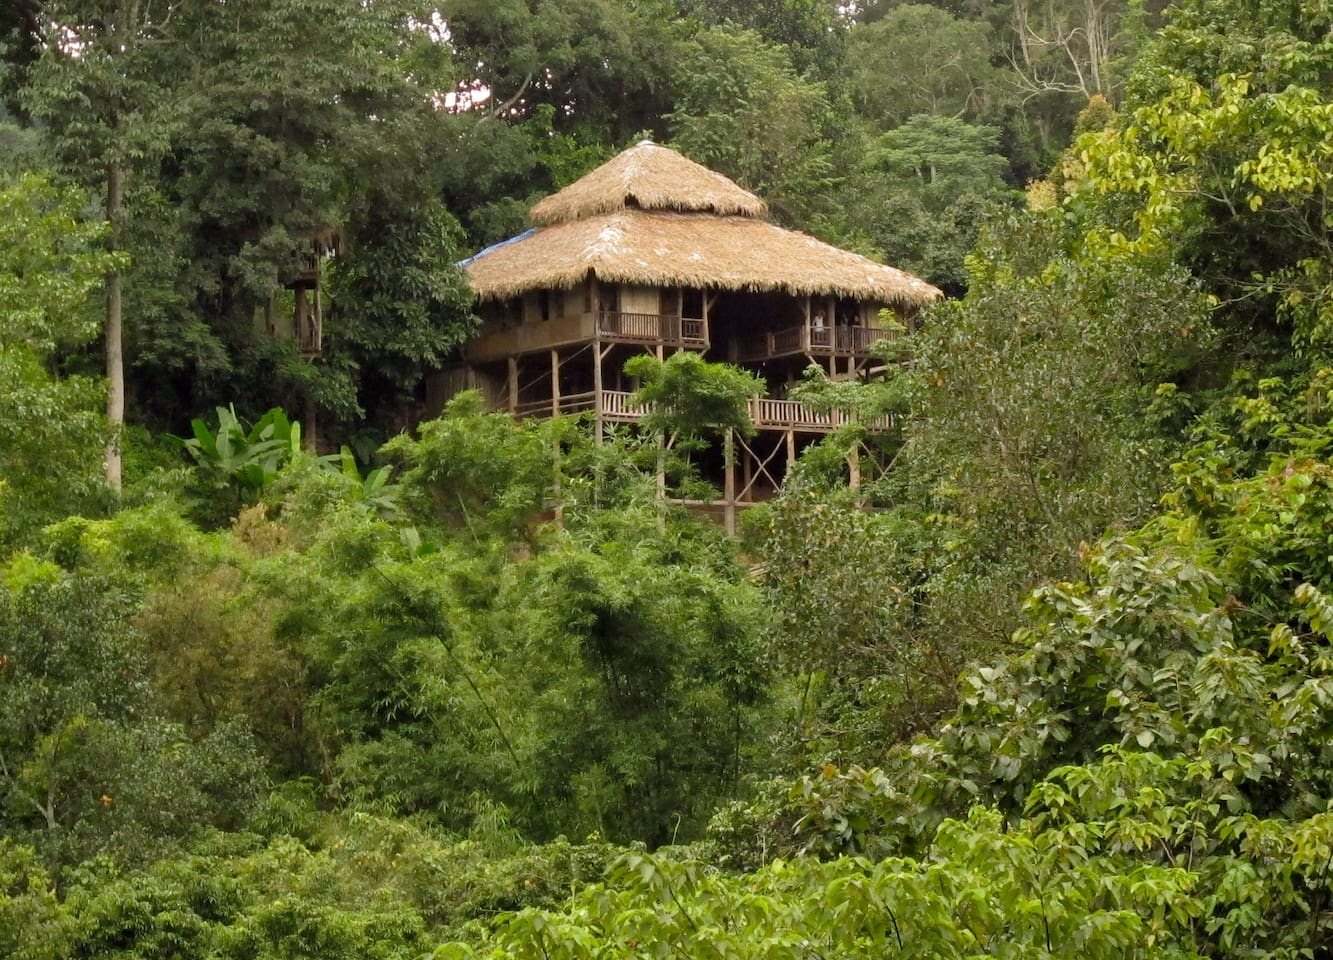 Tree House Hideaway nestled amongst the jungle-scape